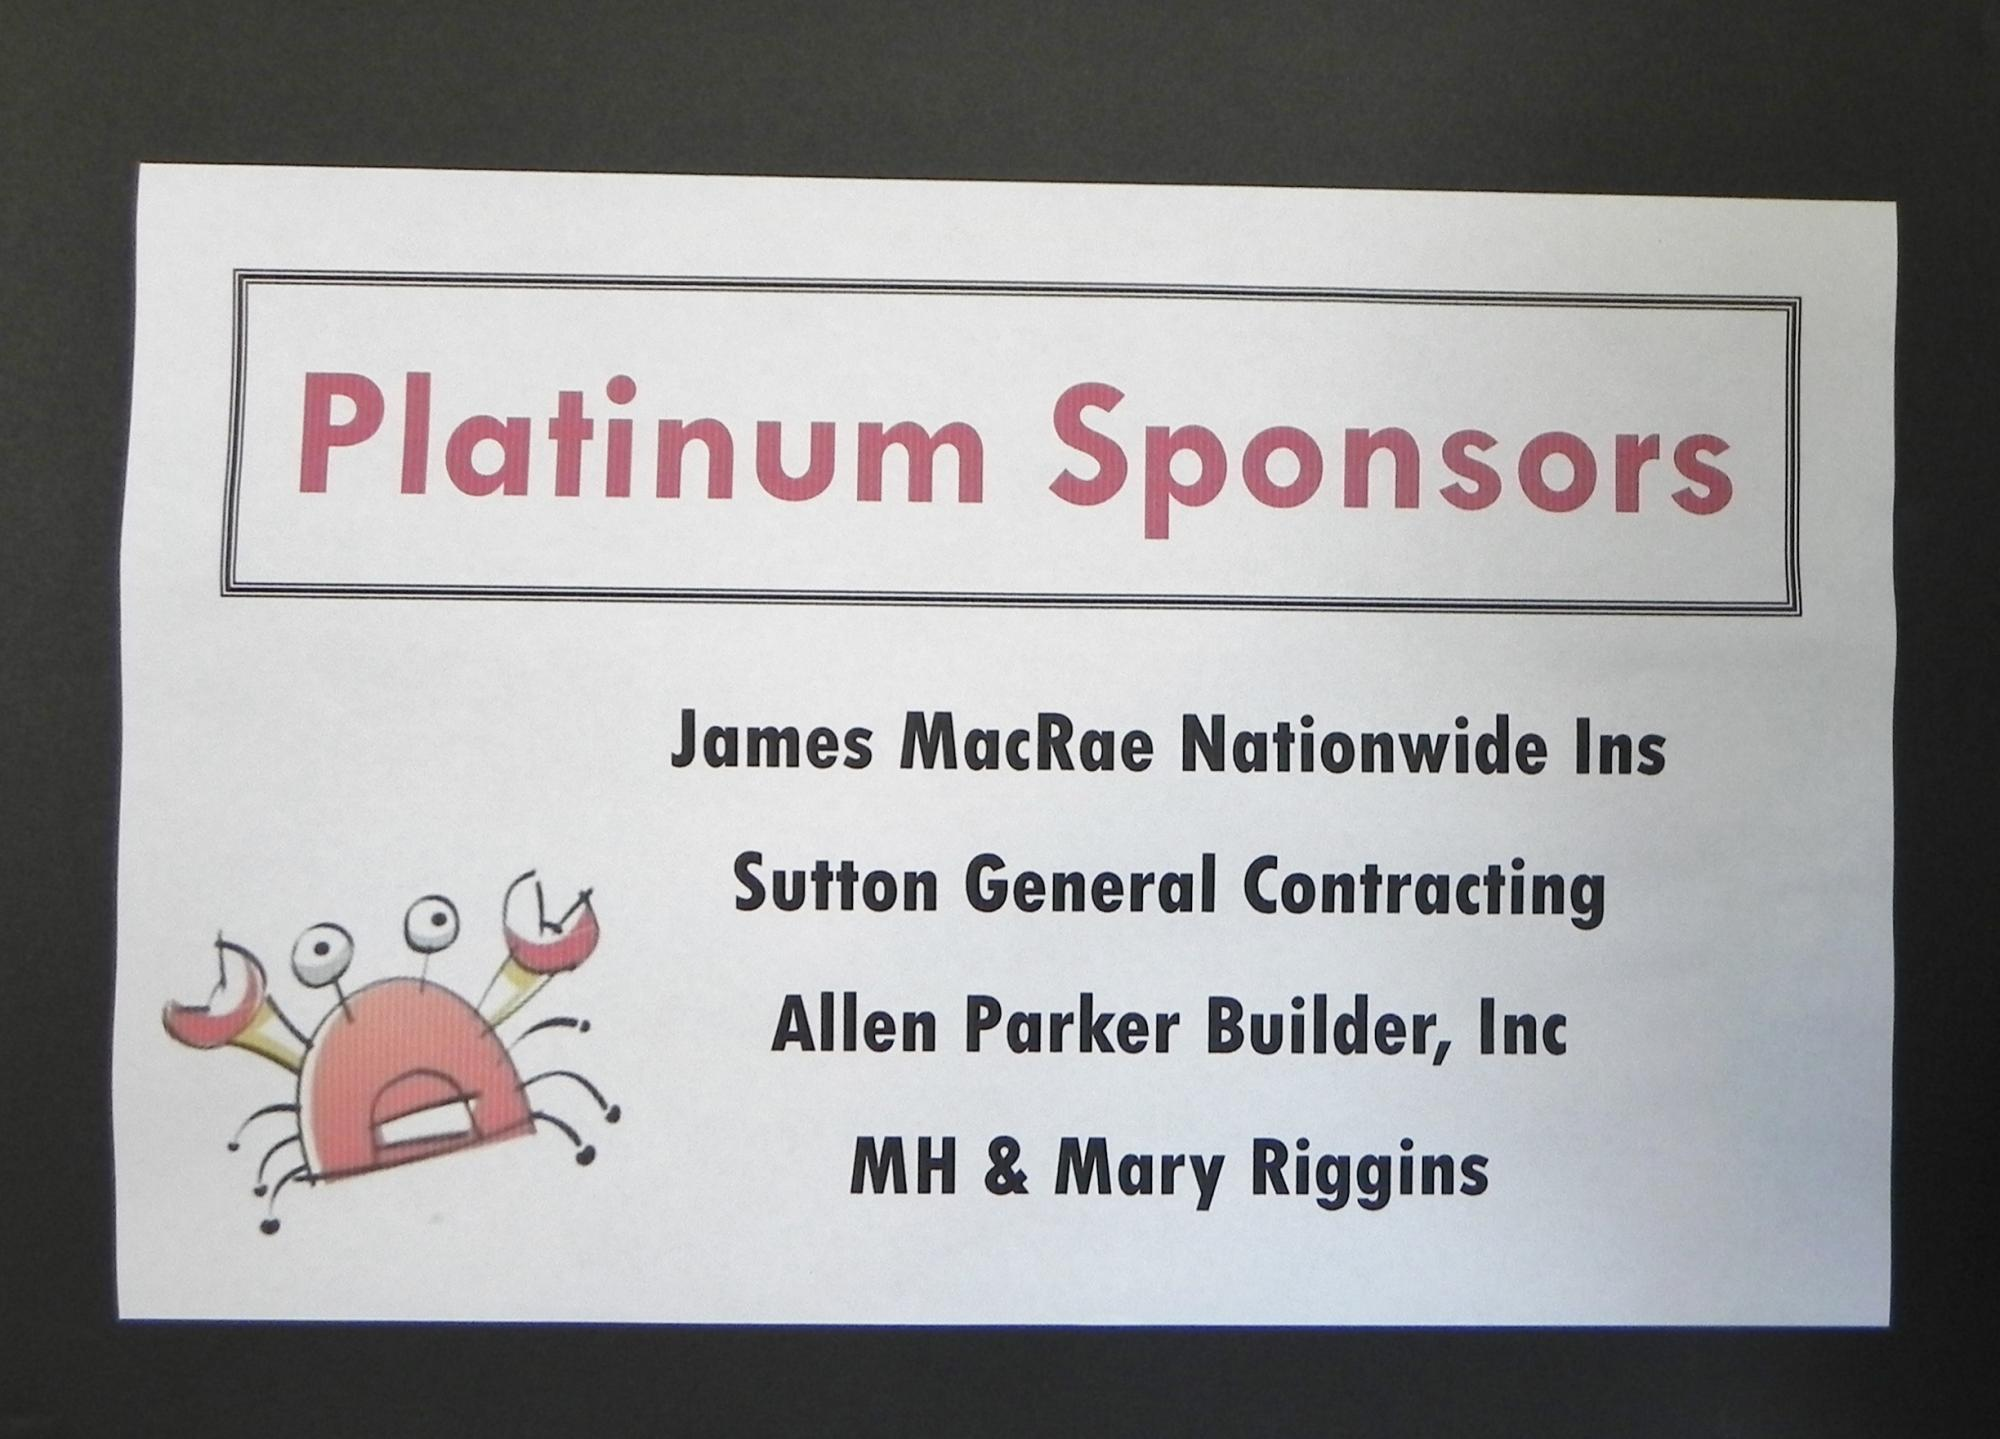 sign-platinum-sponsors.jpg